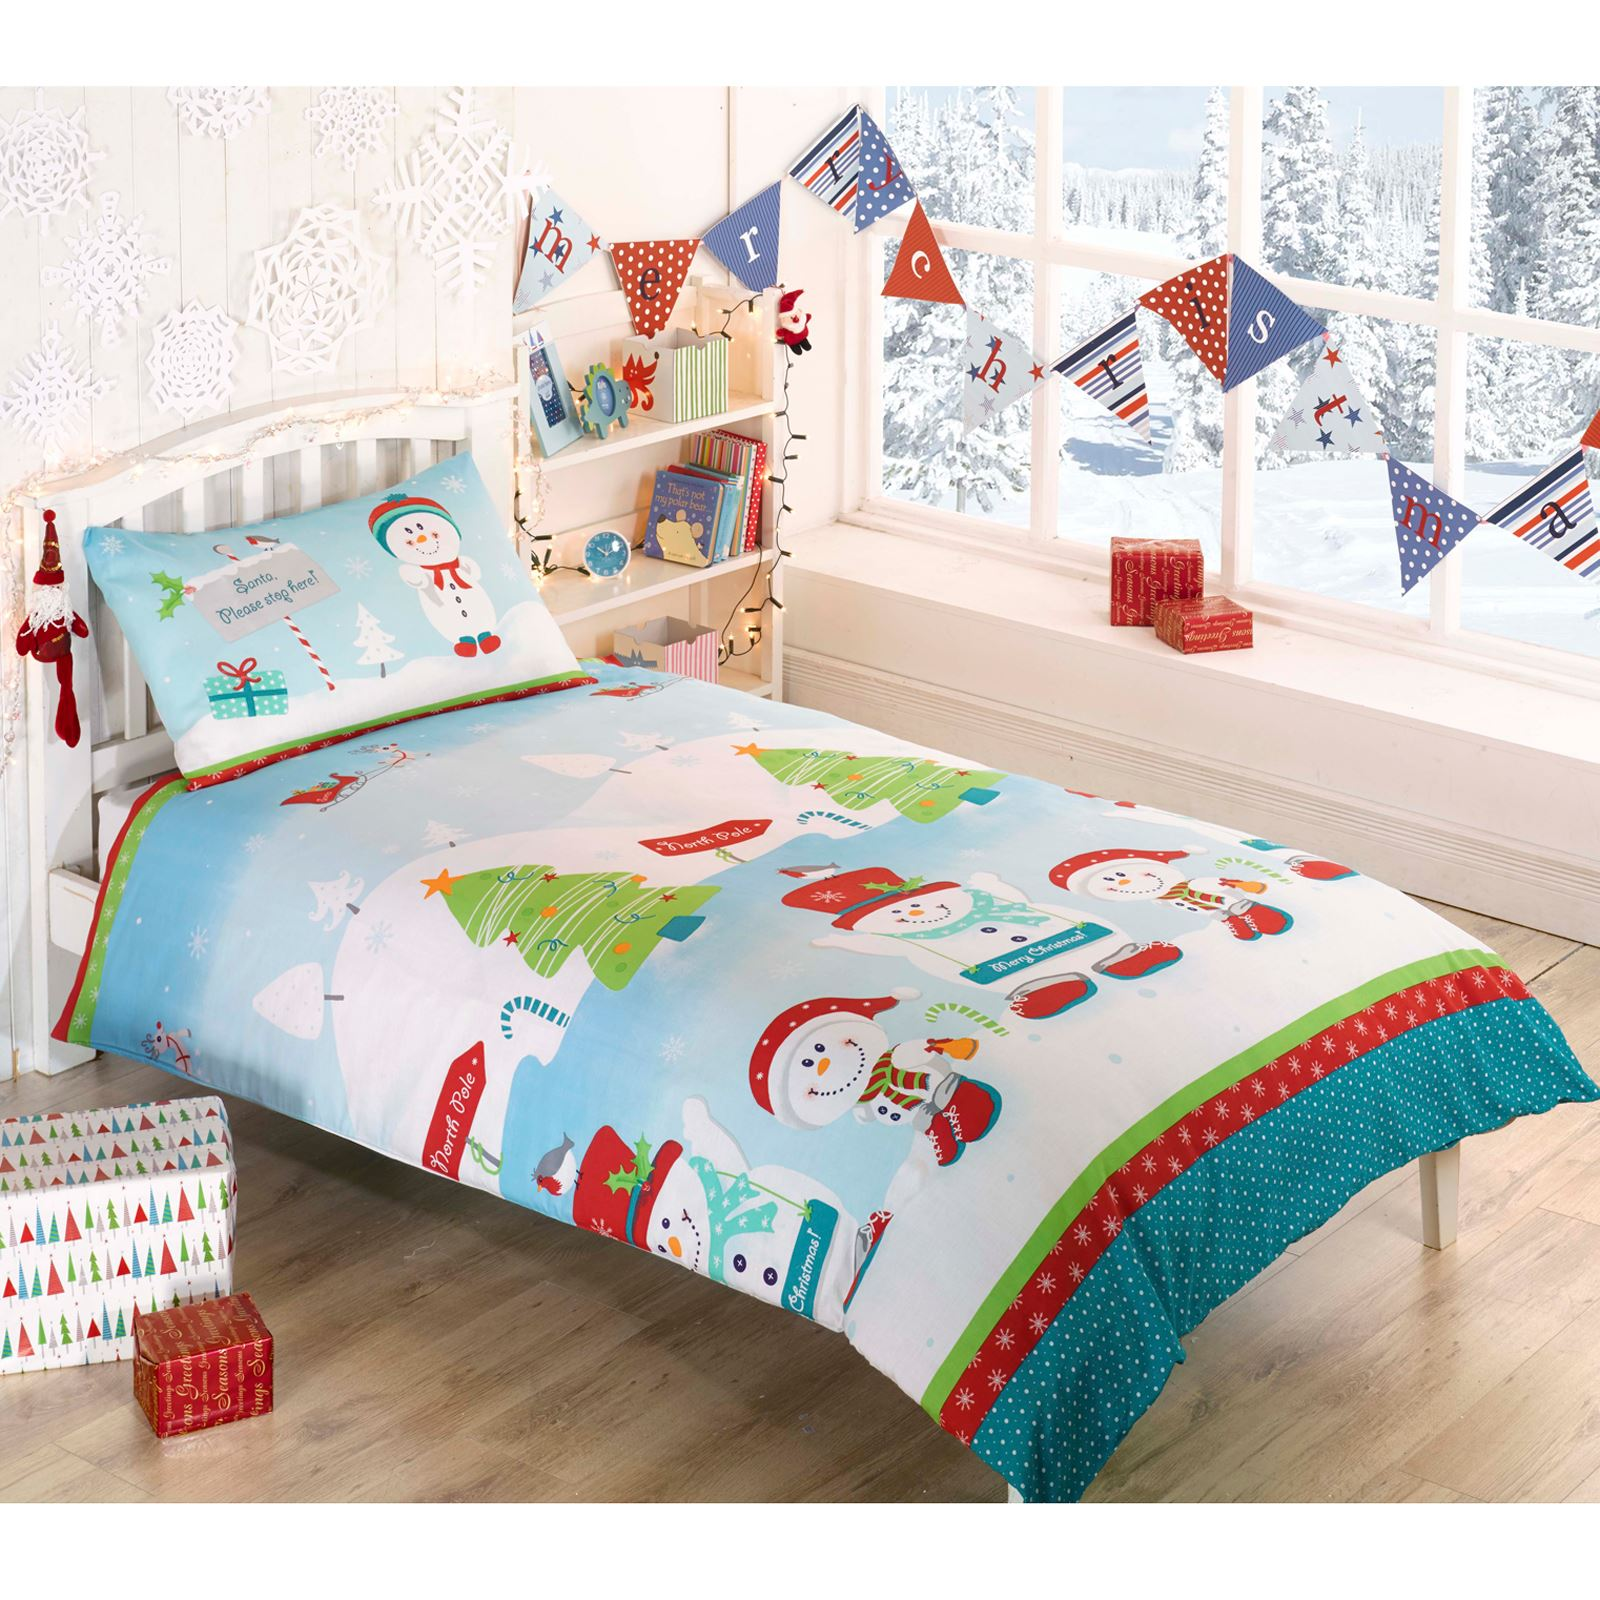 november homeware kidswear bedding features en collection primark home duvet kids